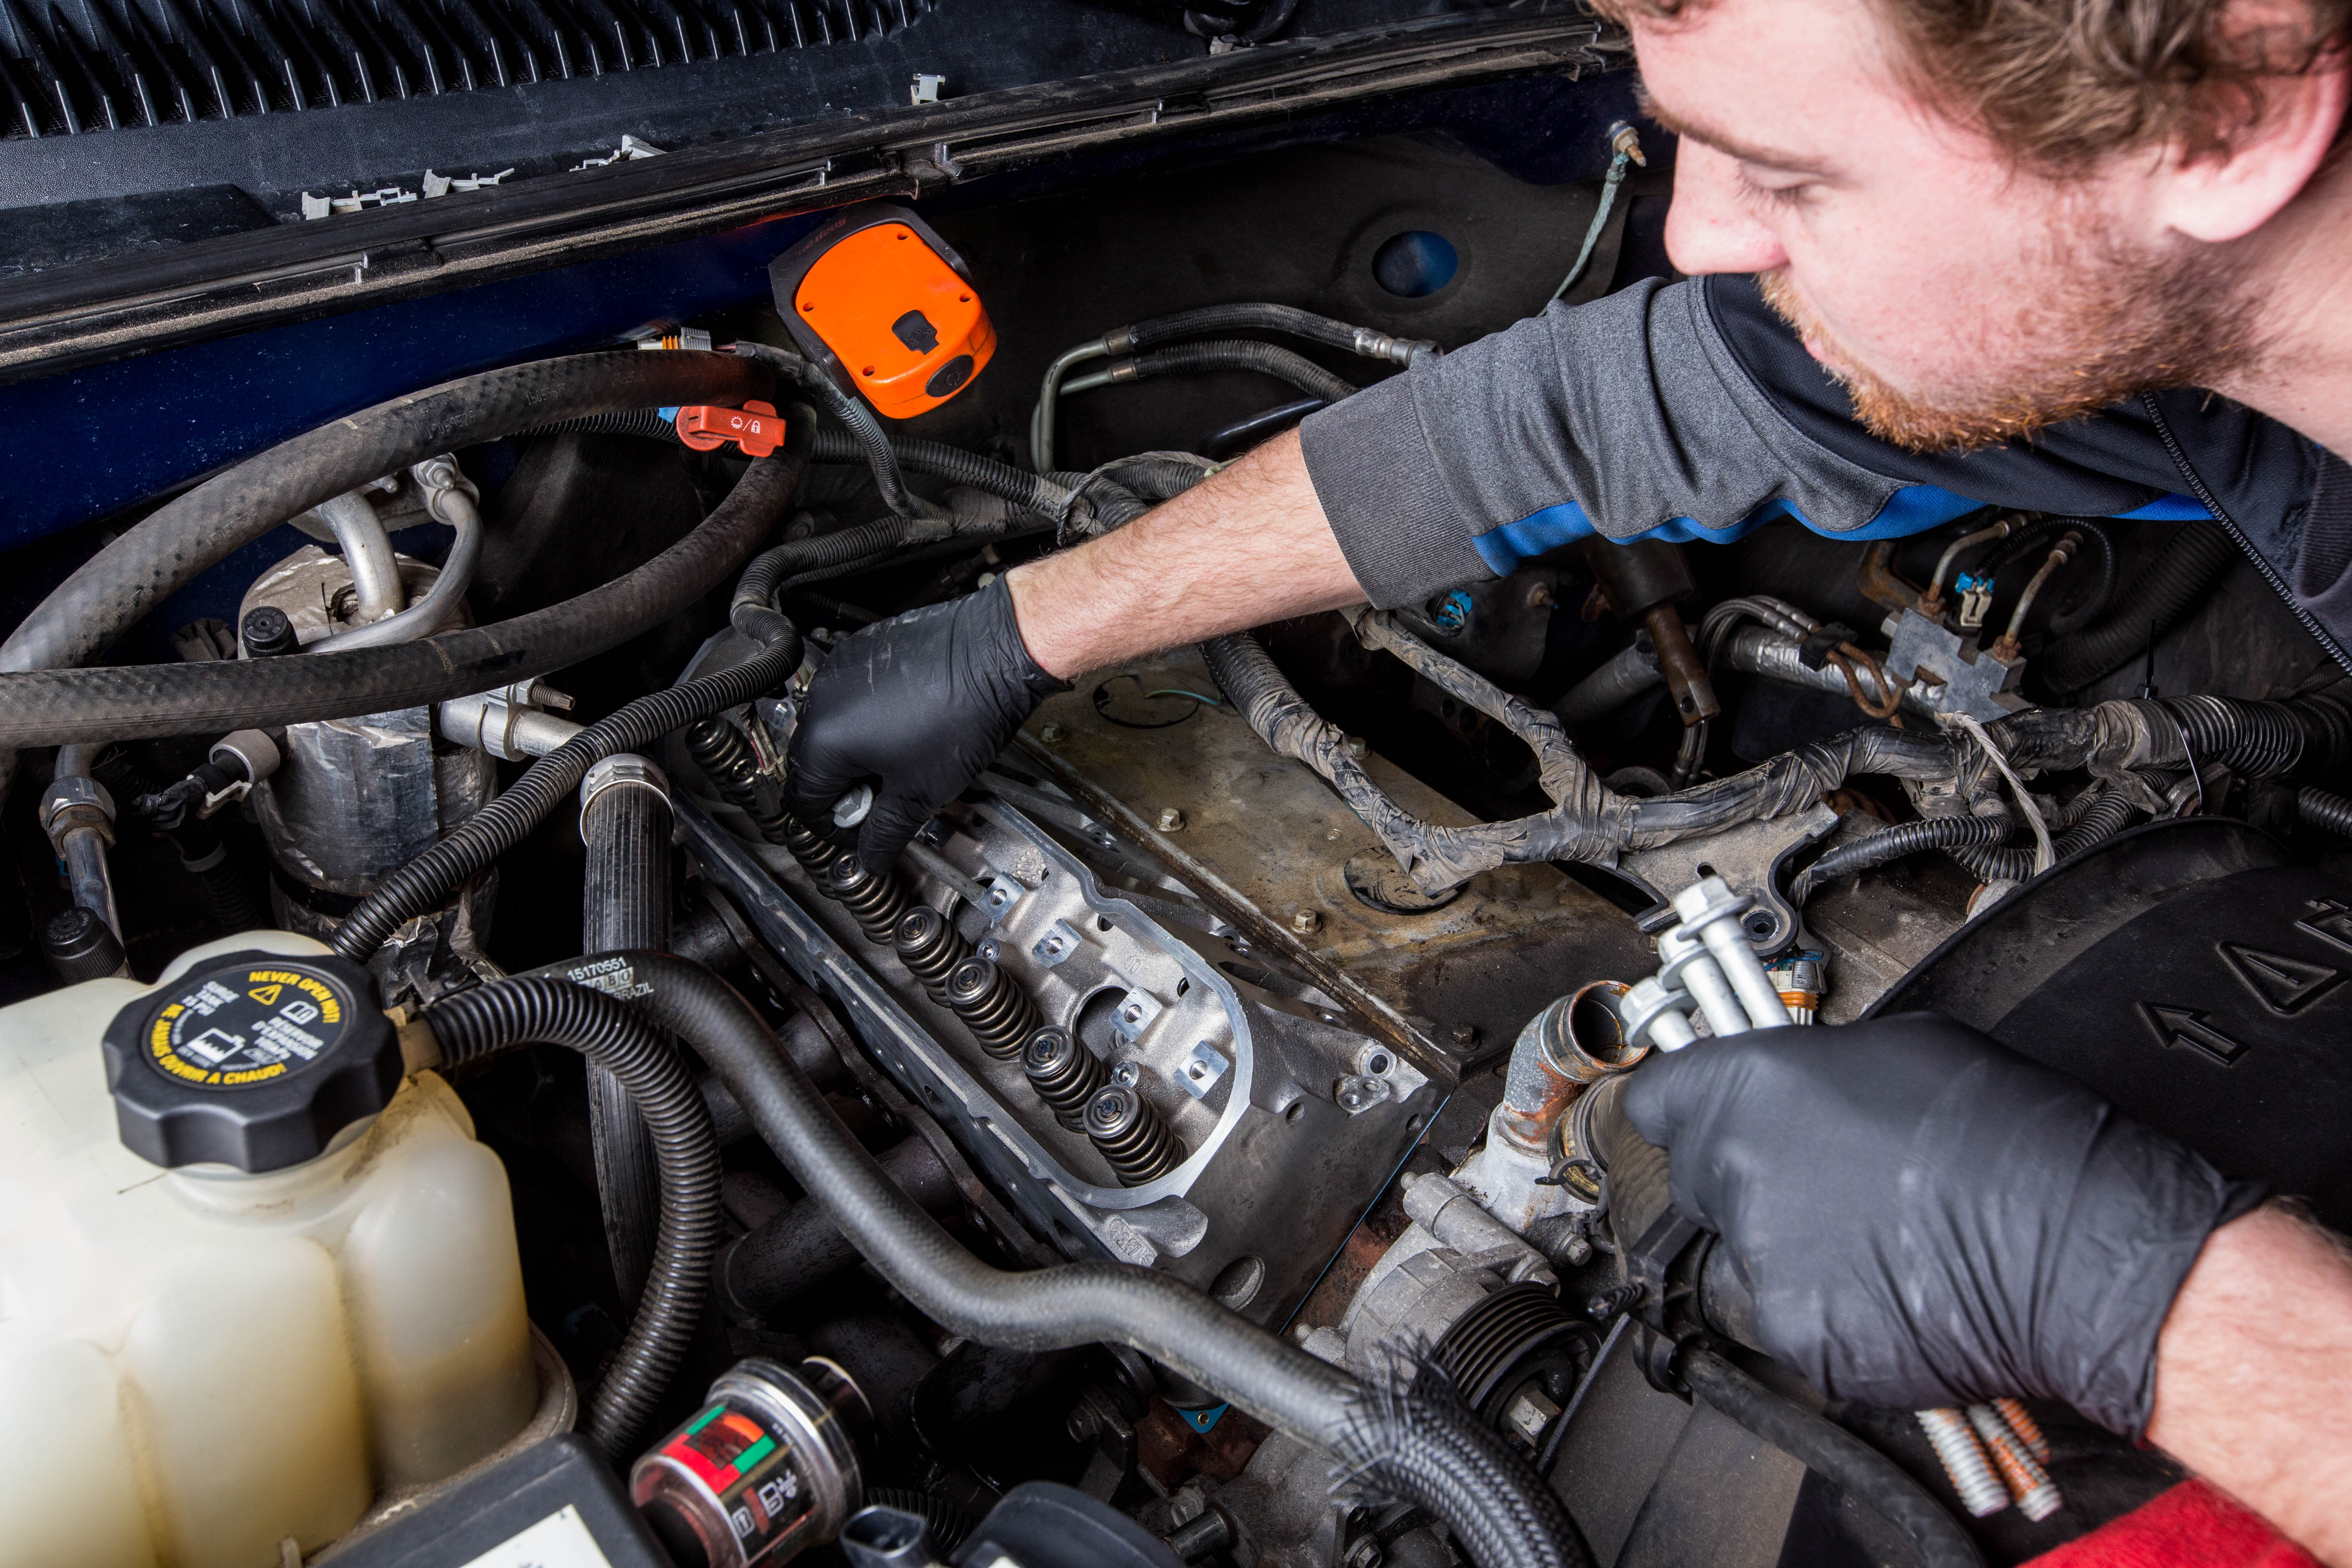 ASE Technician Performing Automotive Service